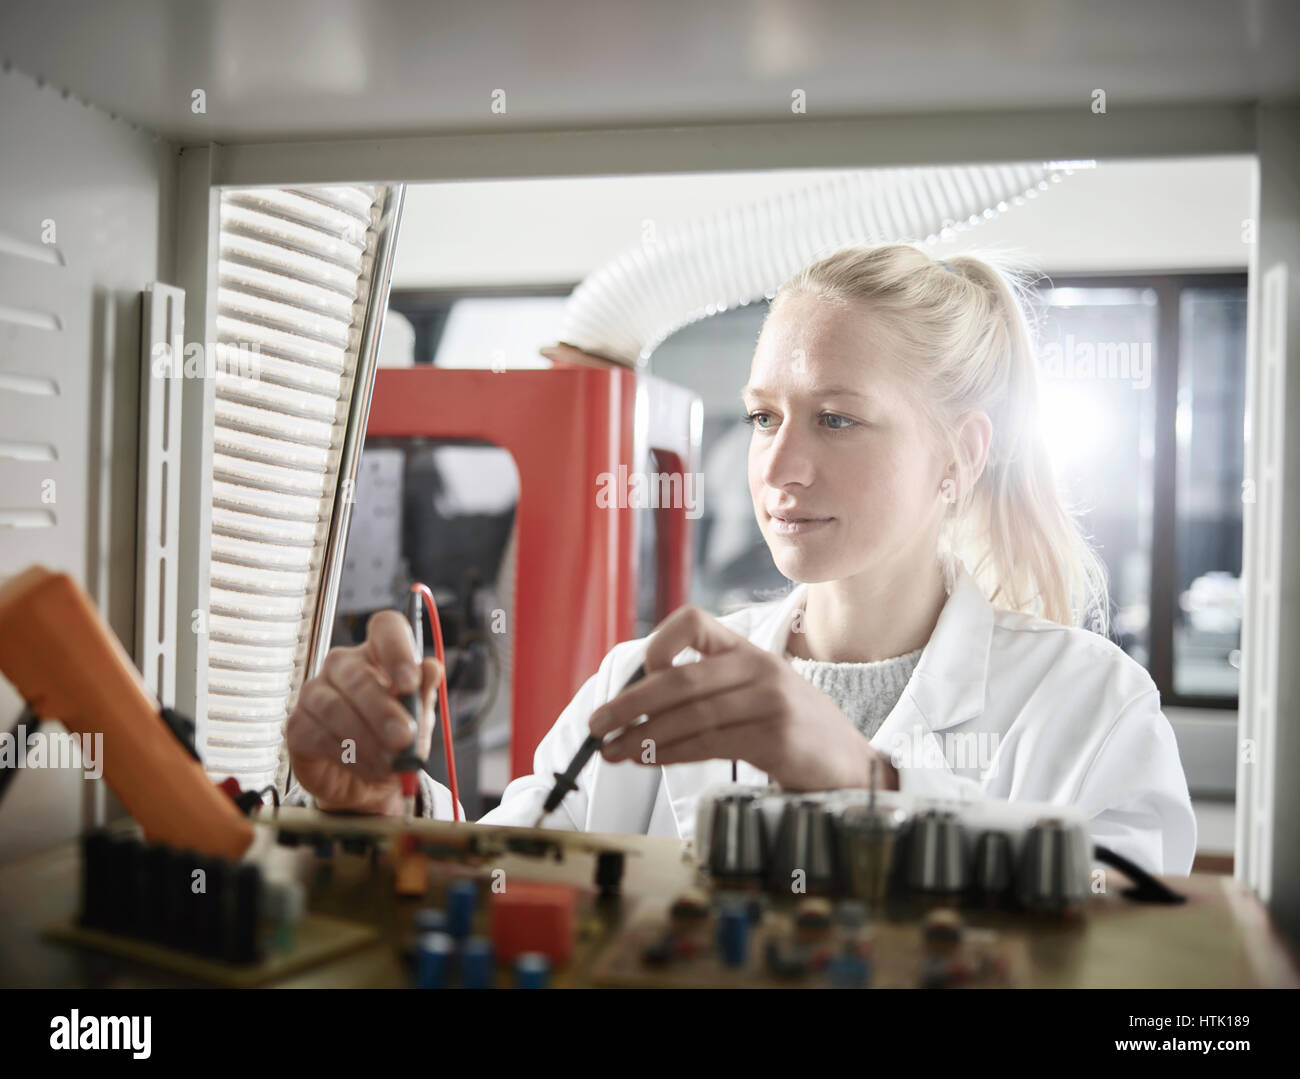 Young woman with white lab coat measuring controller with meter, Austria - Stock Image